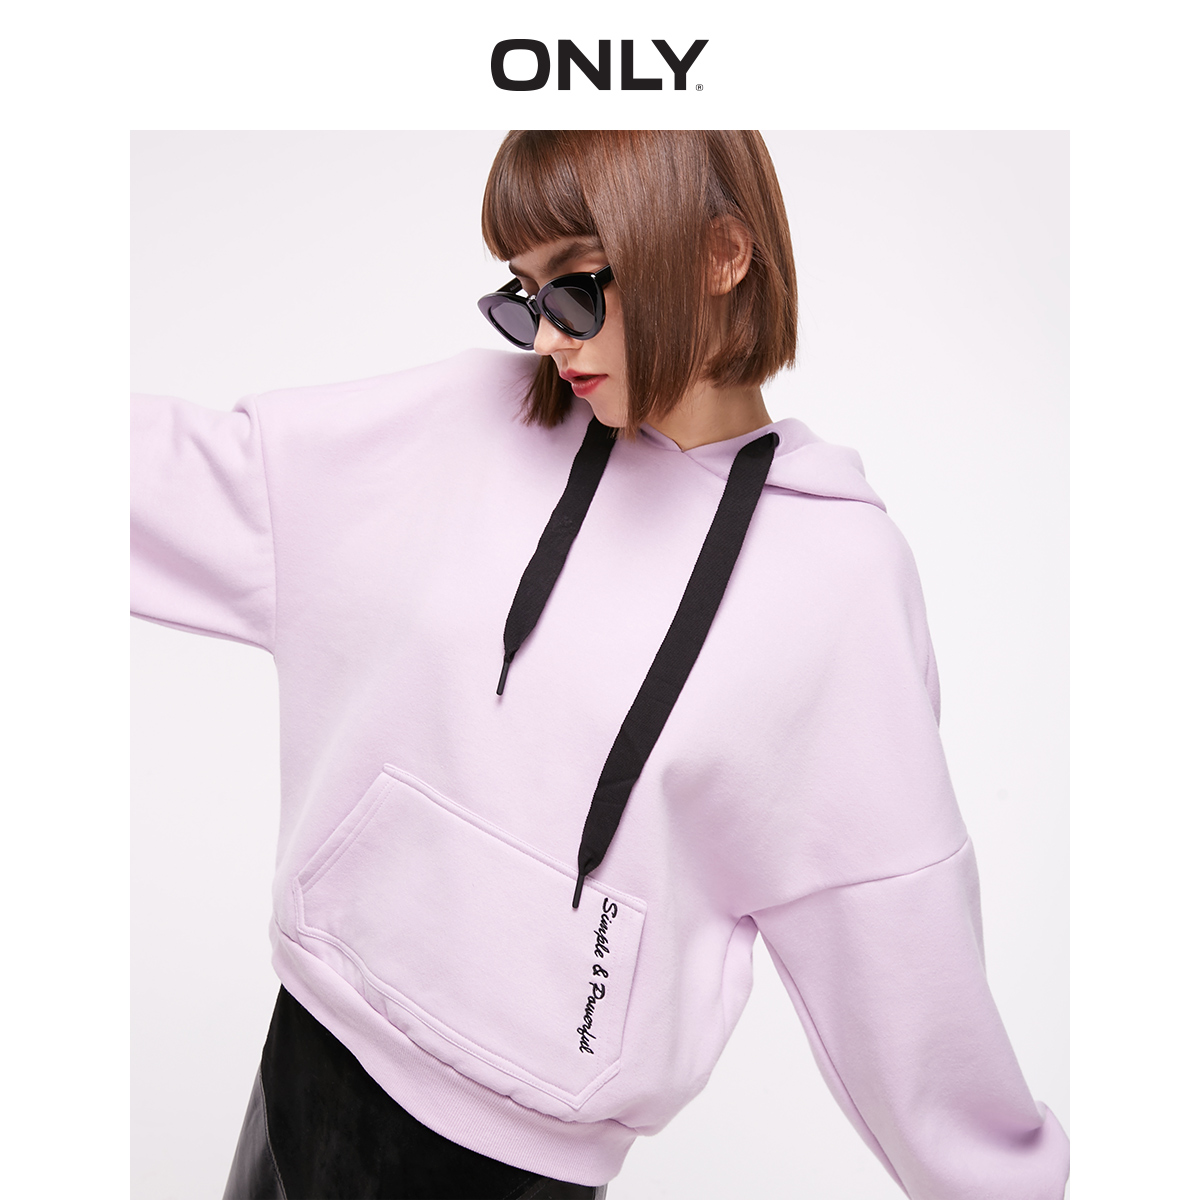 ONLY 2019 Autumn Winter Women's Loose Fit Letter Print Brushed Sweatshirt | 11939S538